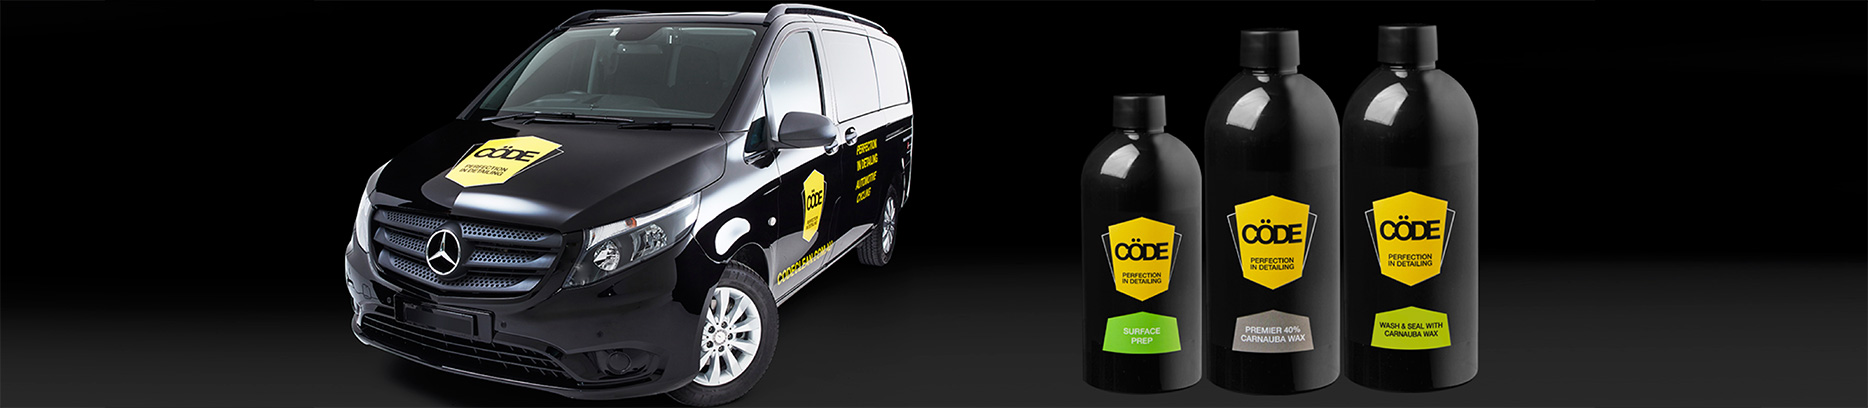 Automotive detailing by CödeClean UK